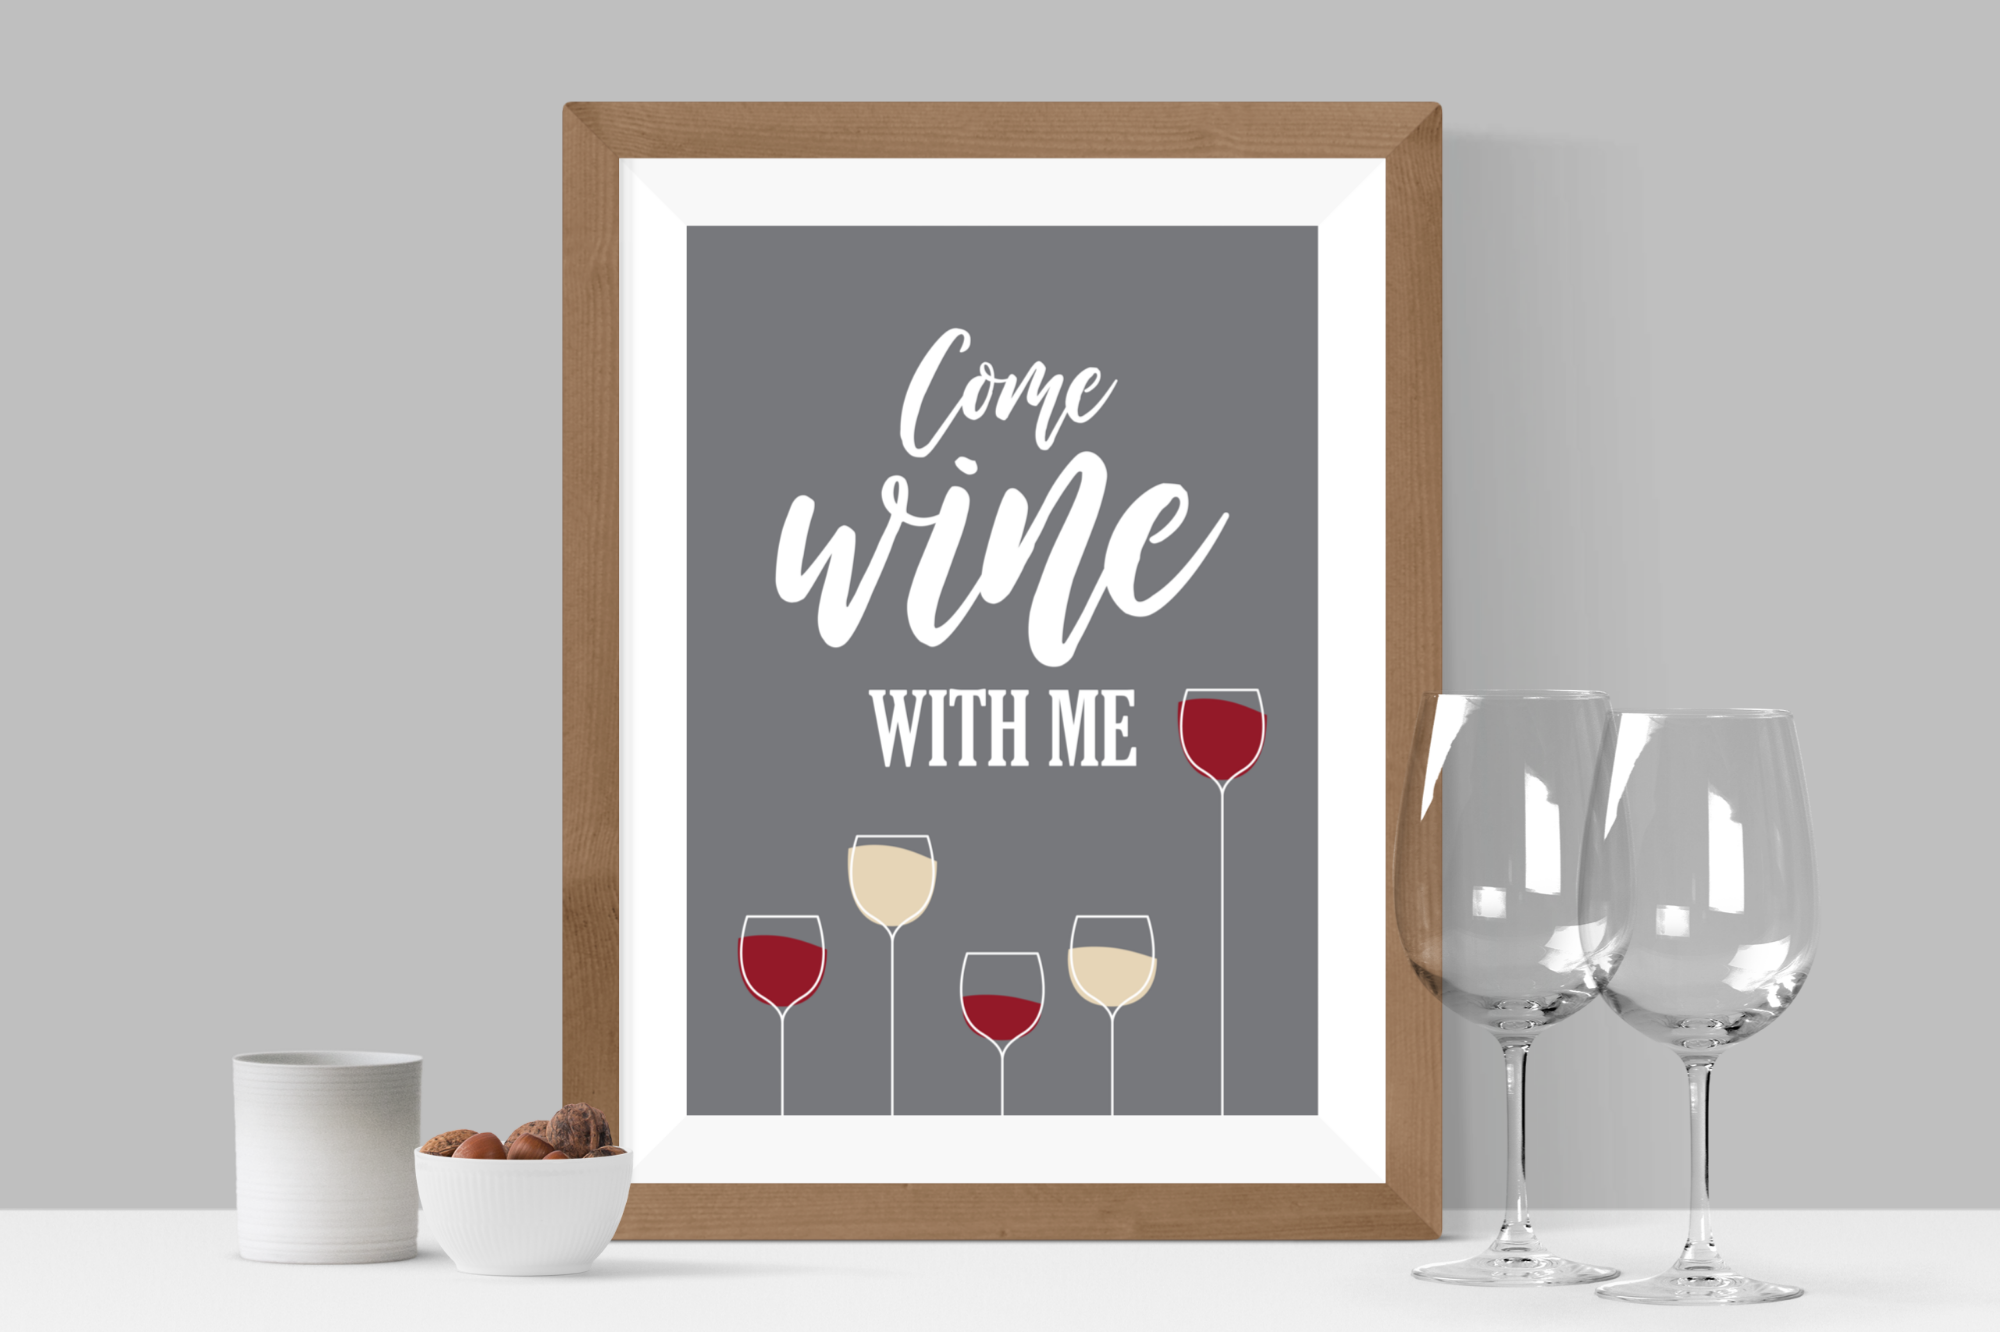 Come-Wine-With-Me-Dark-Wood-Frame-3-x-2